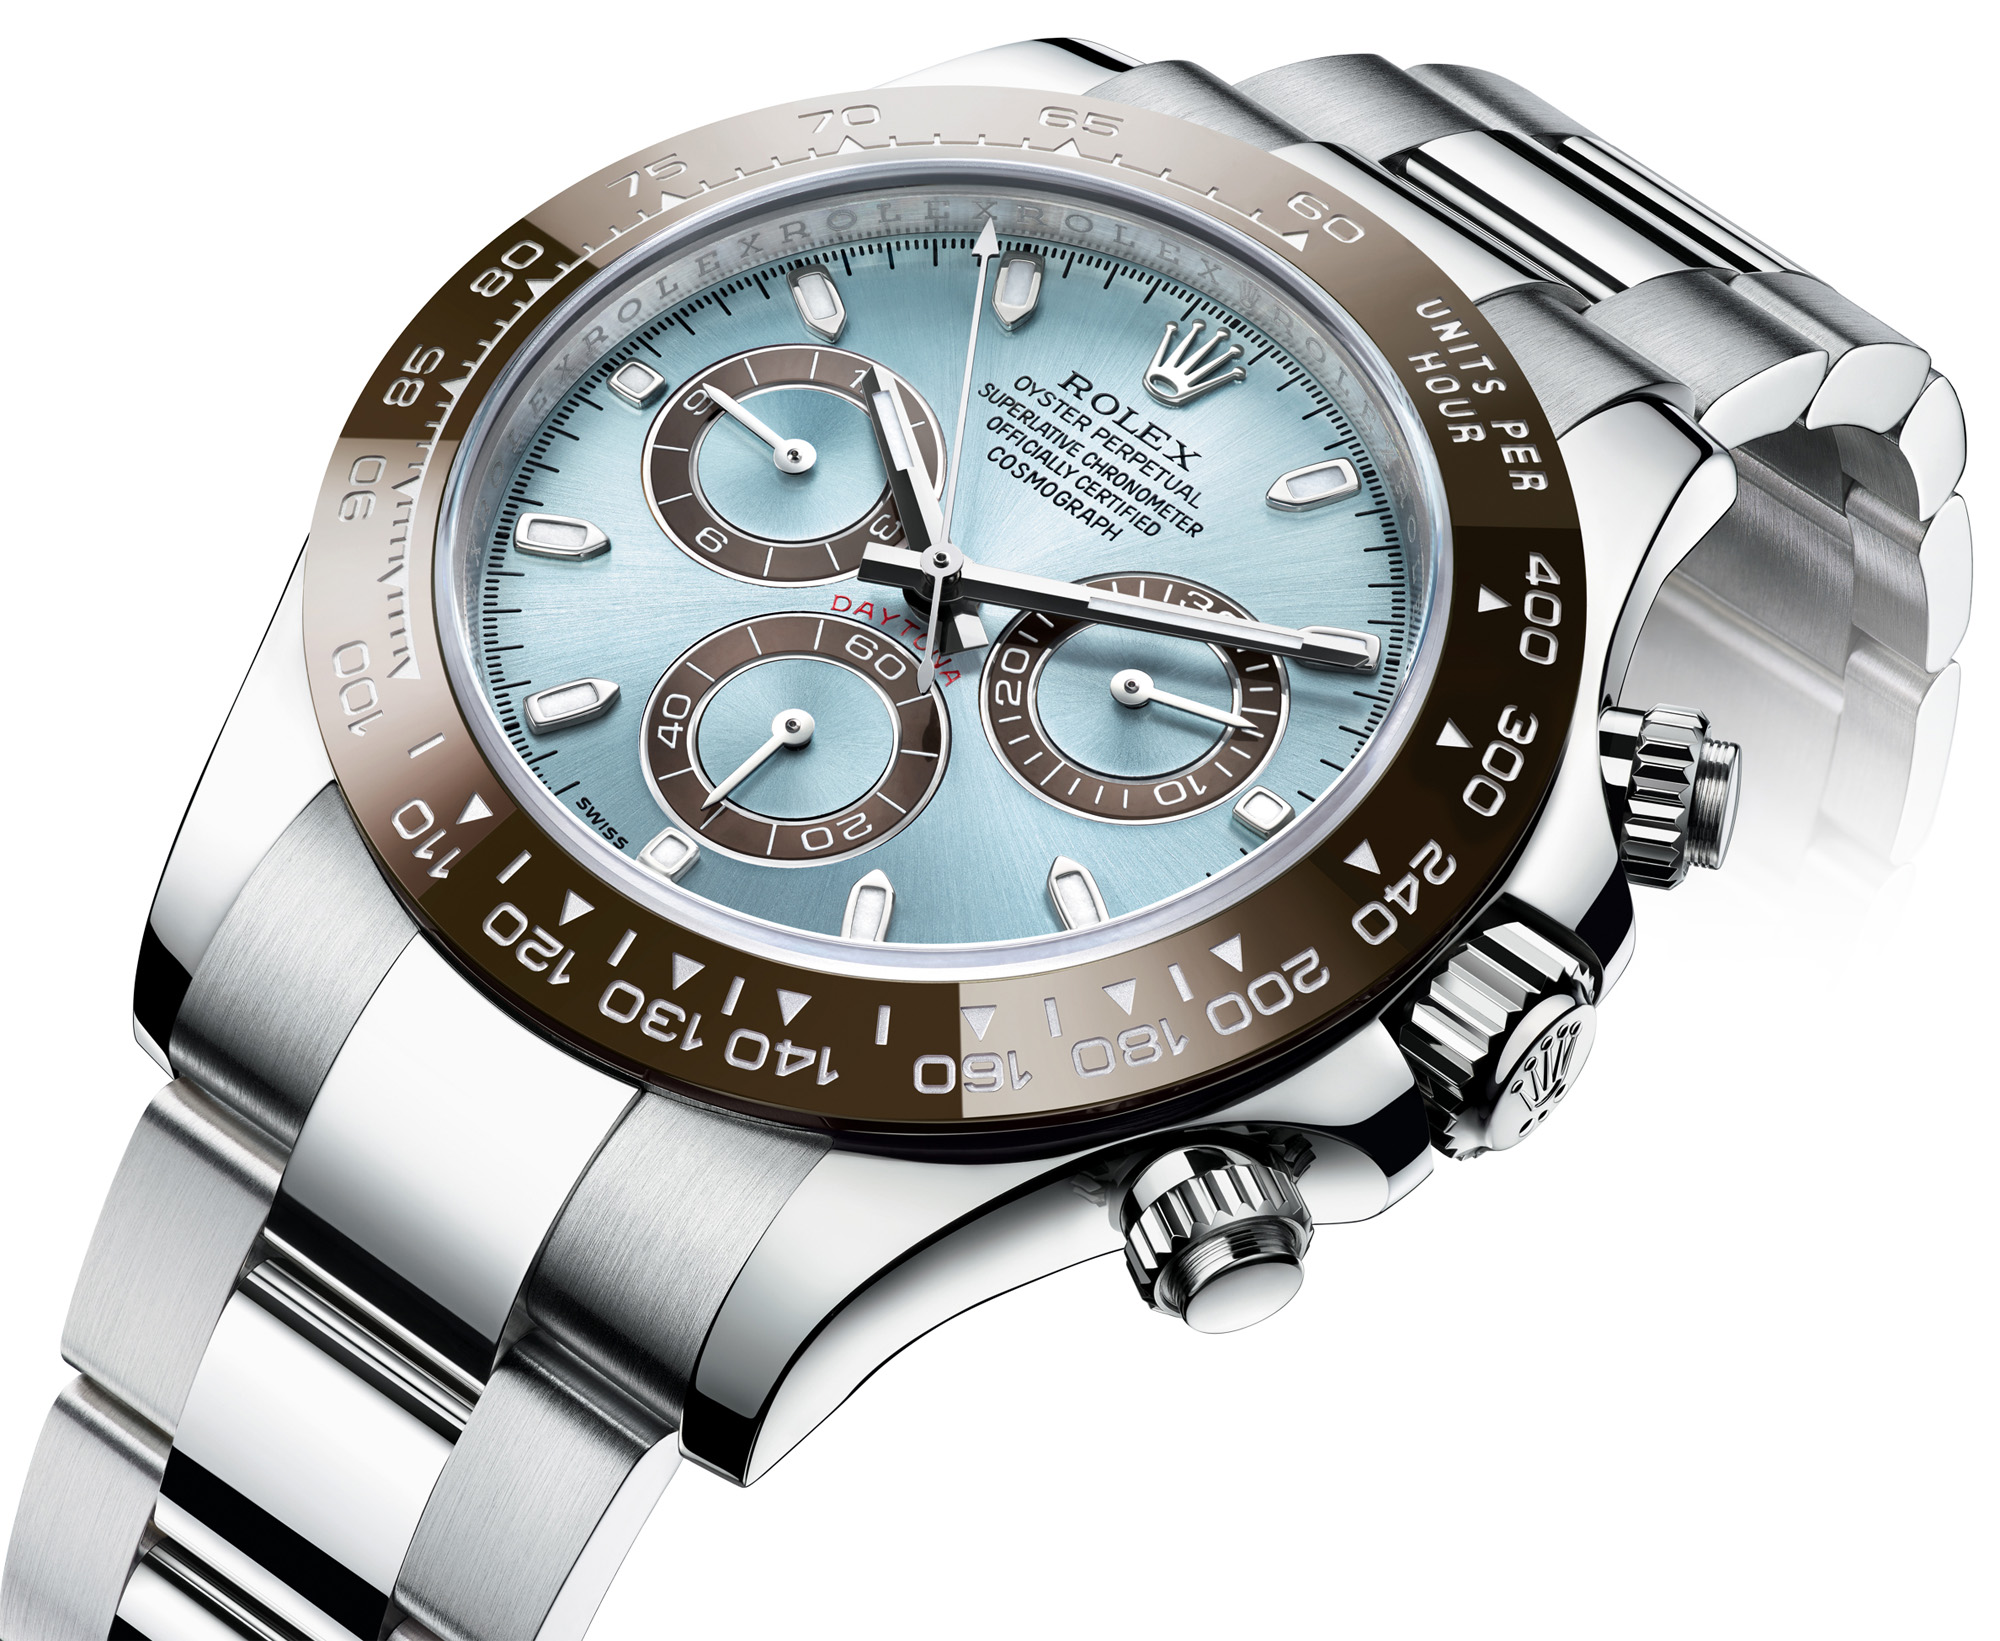 rolex-cosmograph-daytona-fake-chestnut-brown-bezels